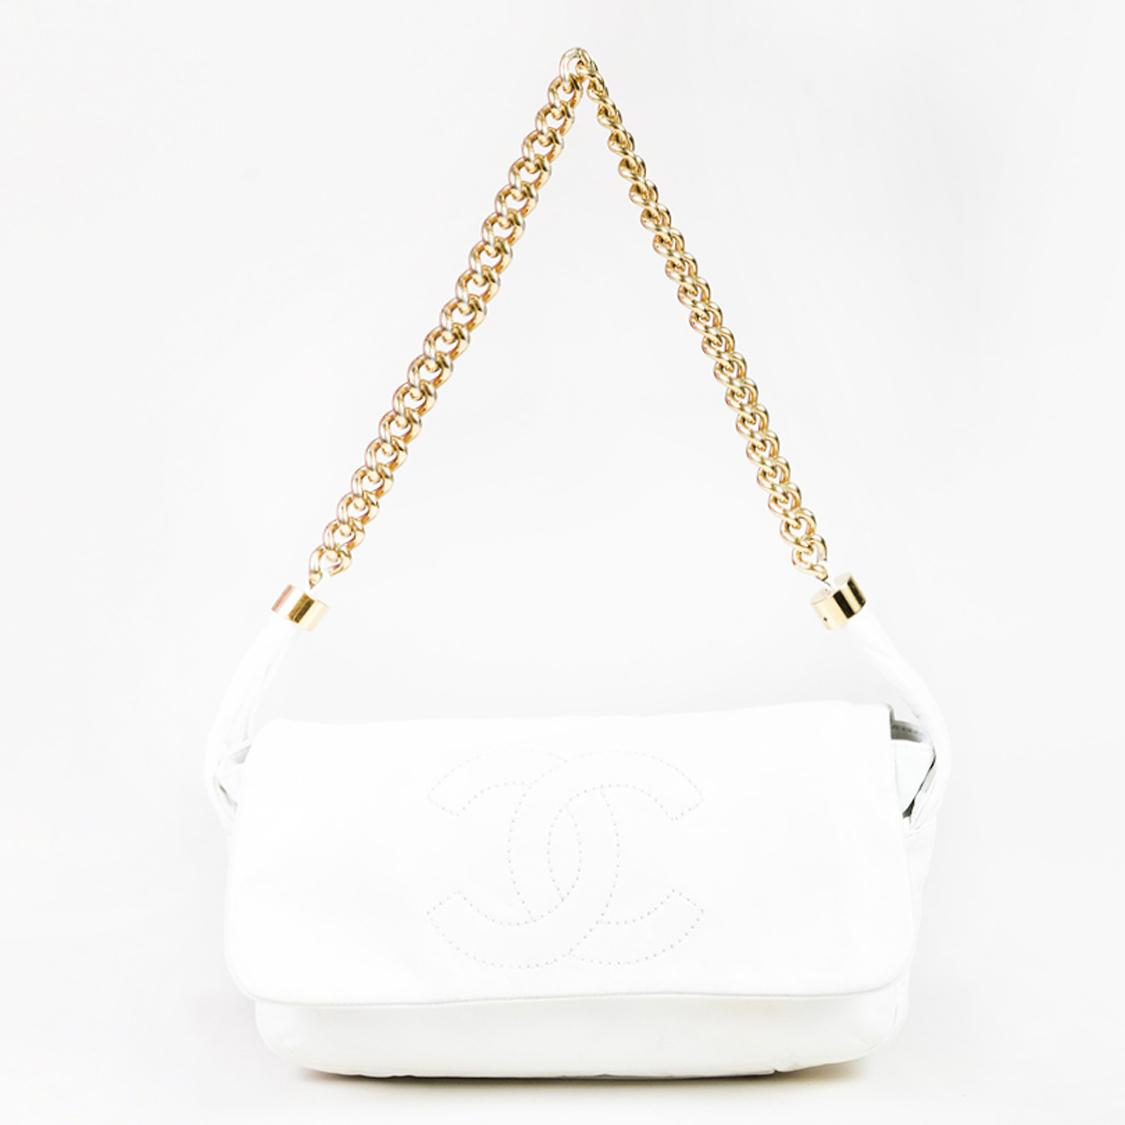 3ca8c5b429c2 Chanel. Women's White Leather 'cc' Stitched Gold Tone Chain Link Shoulder  Bag